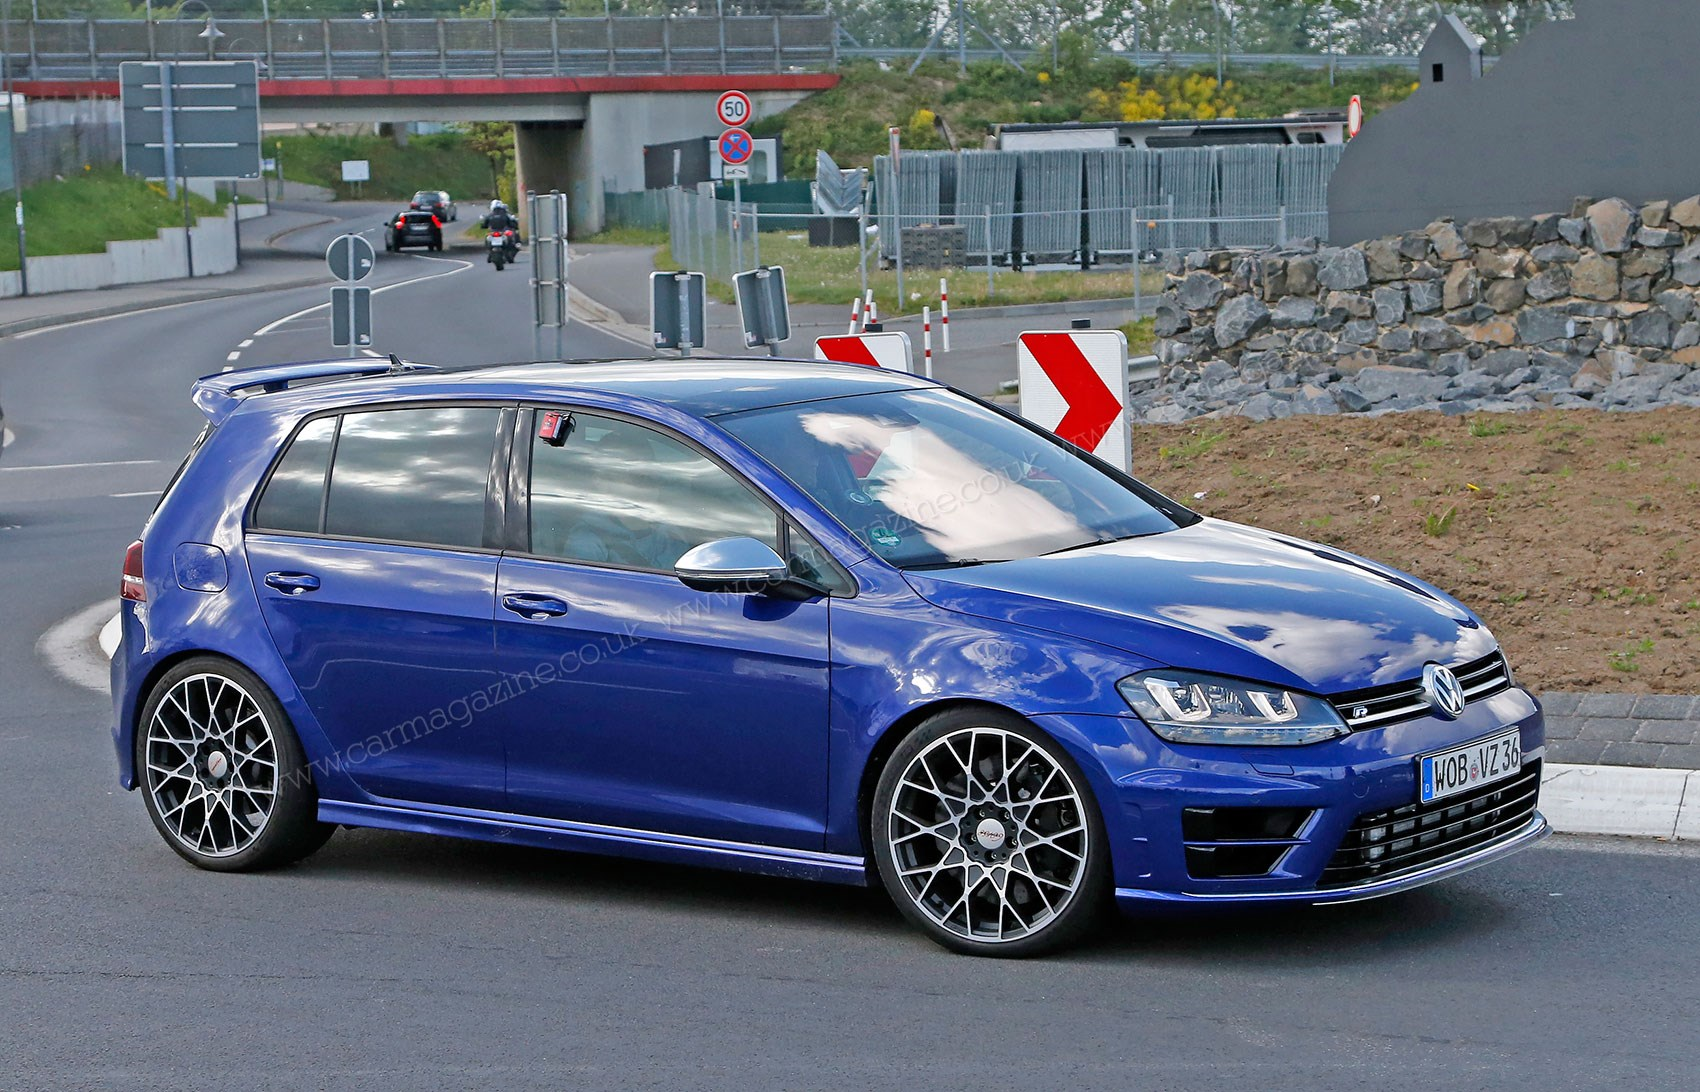 2017 Vw Golf R Abt Sportsline 38270 F 260733 furthermore Watch also Official 2017 Volkswagen Golf Gti Clubsport S together with Neo VW Golf R 2017 140366 in addition Ers ontakt Vw Golf 7 R Facelift Mit Biss. on vw golf r 400